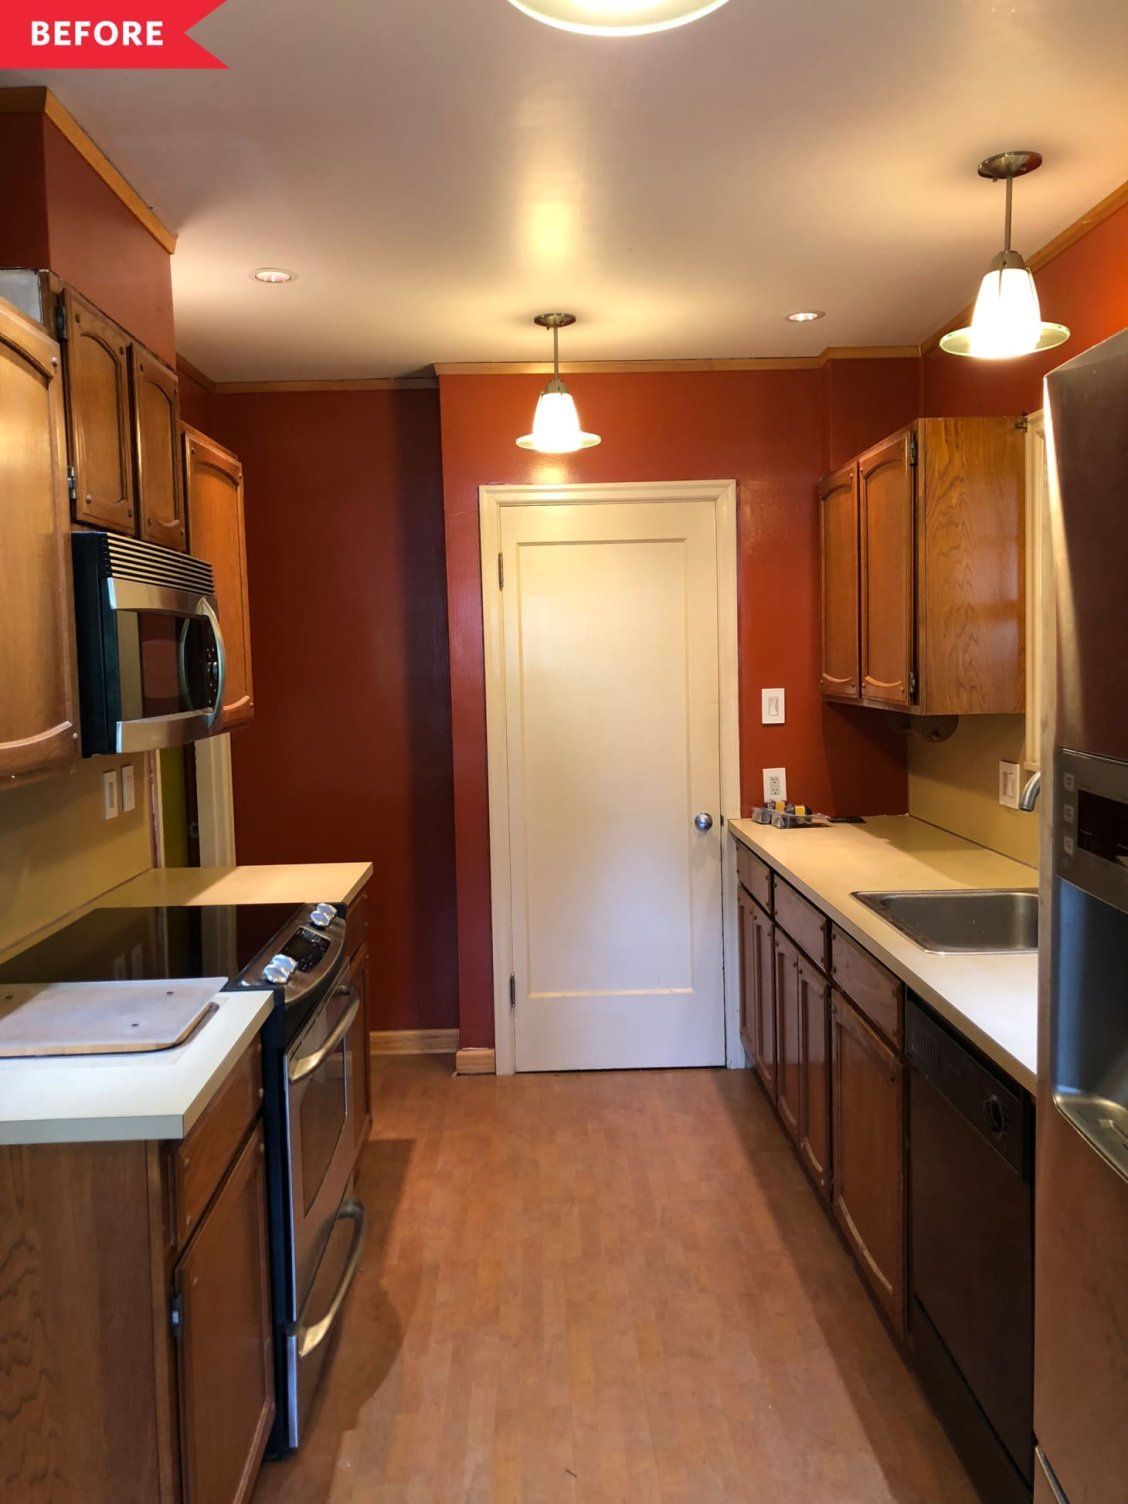 Before After Thanks To Smart Budget Ideas A Dark And Dated Kitchen Is Now Much Improved Budget Kitchen Remodel Kitchen On A Budget Budget Remodel